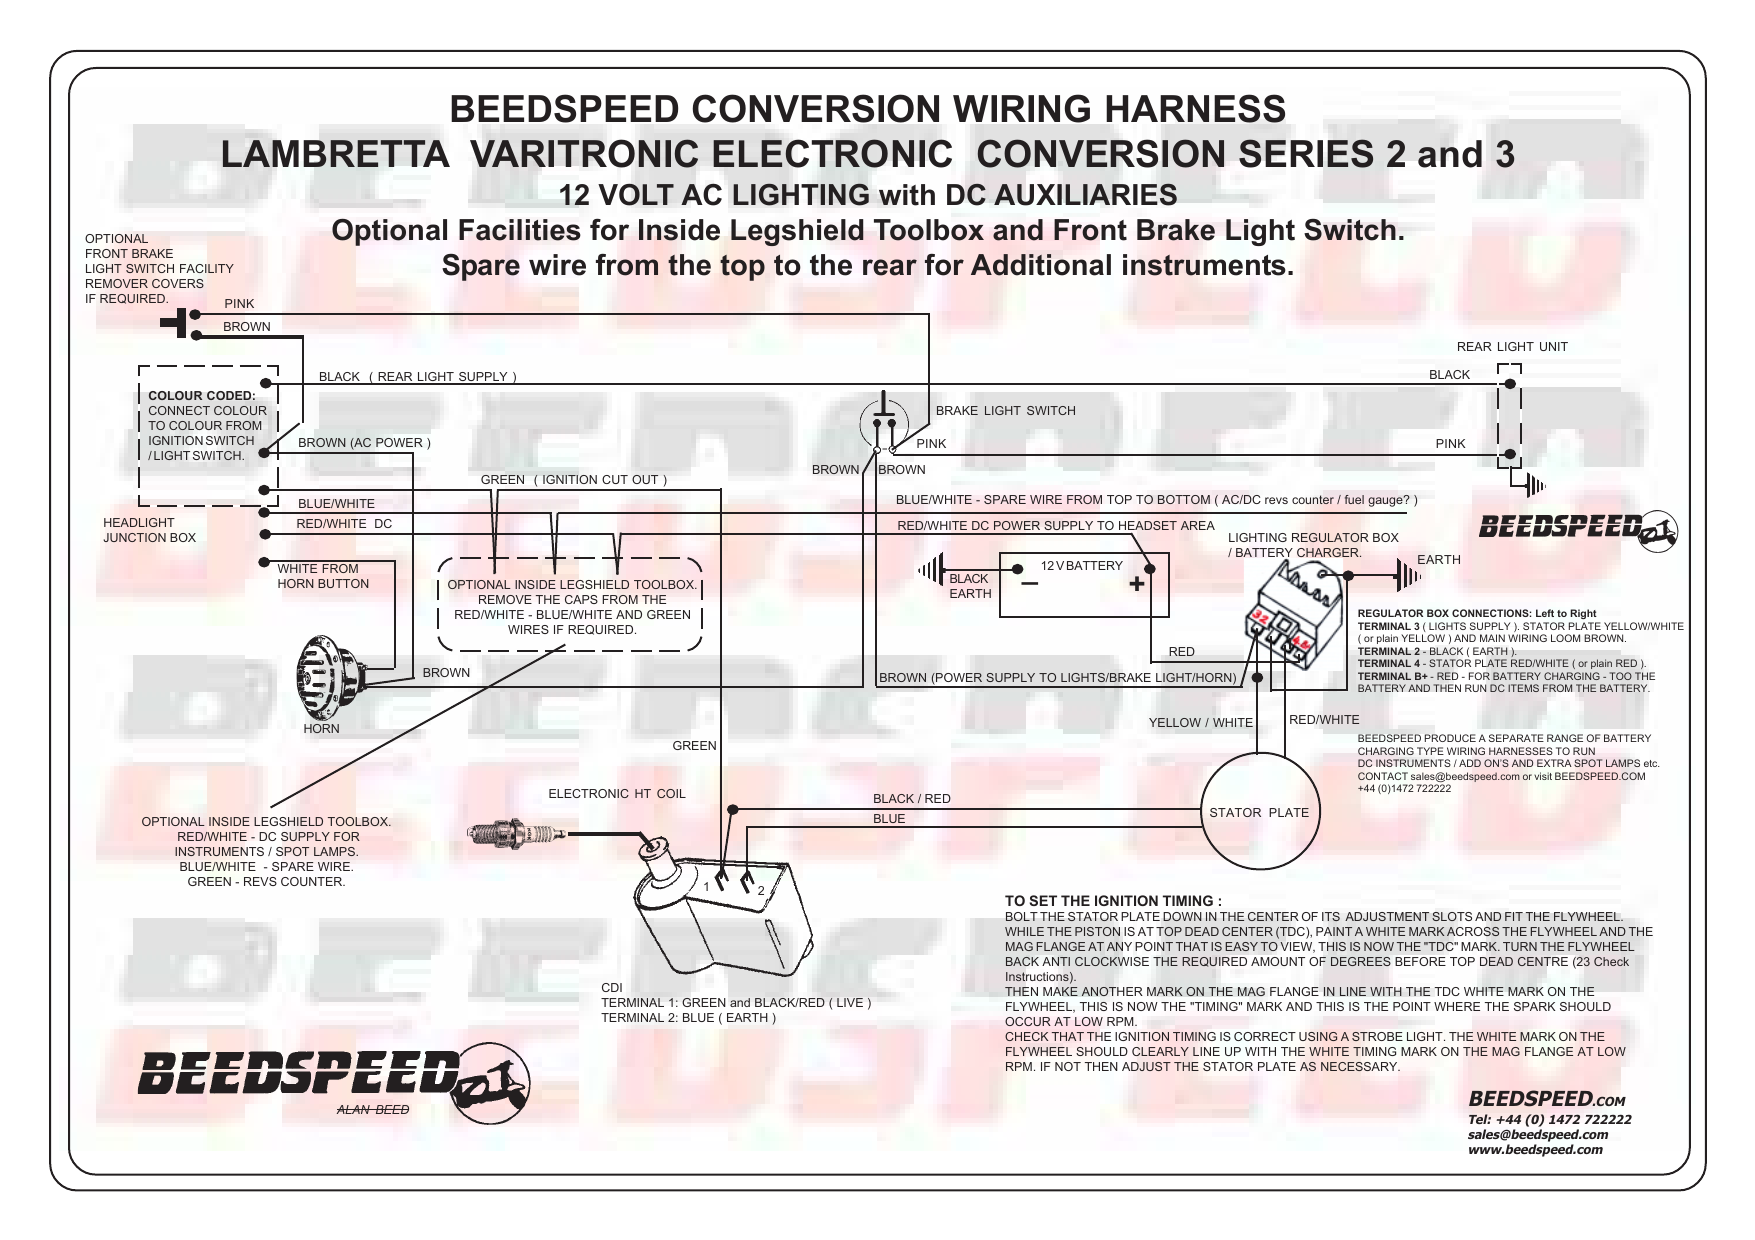 BEEDSD CONVERSION WIRING HARNESS LAMBRETTA on 12 volt battery bank wiring, 12 volt solenoid wiring diagram, 12 volt wiring systems, 12 volt alternator wiring diagram, 12 volt solar wiring diagram, 12 volt battery in series diagram, 12 volt rv wiring diagram, pinout diagrams,